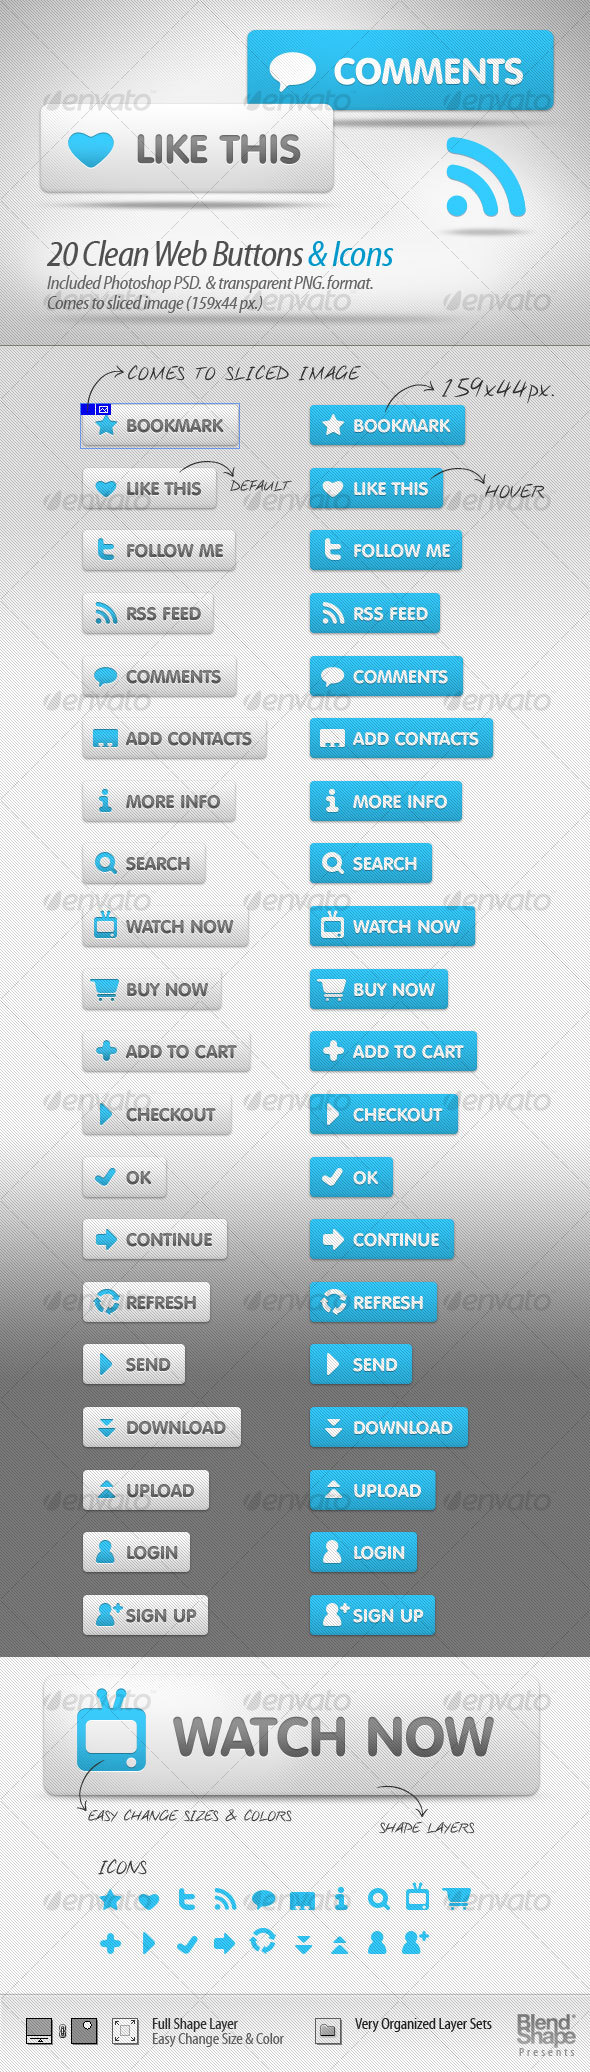 20 Clean Web Buttons & Icons